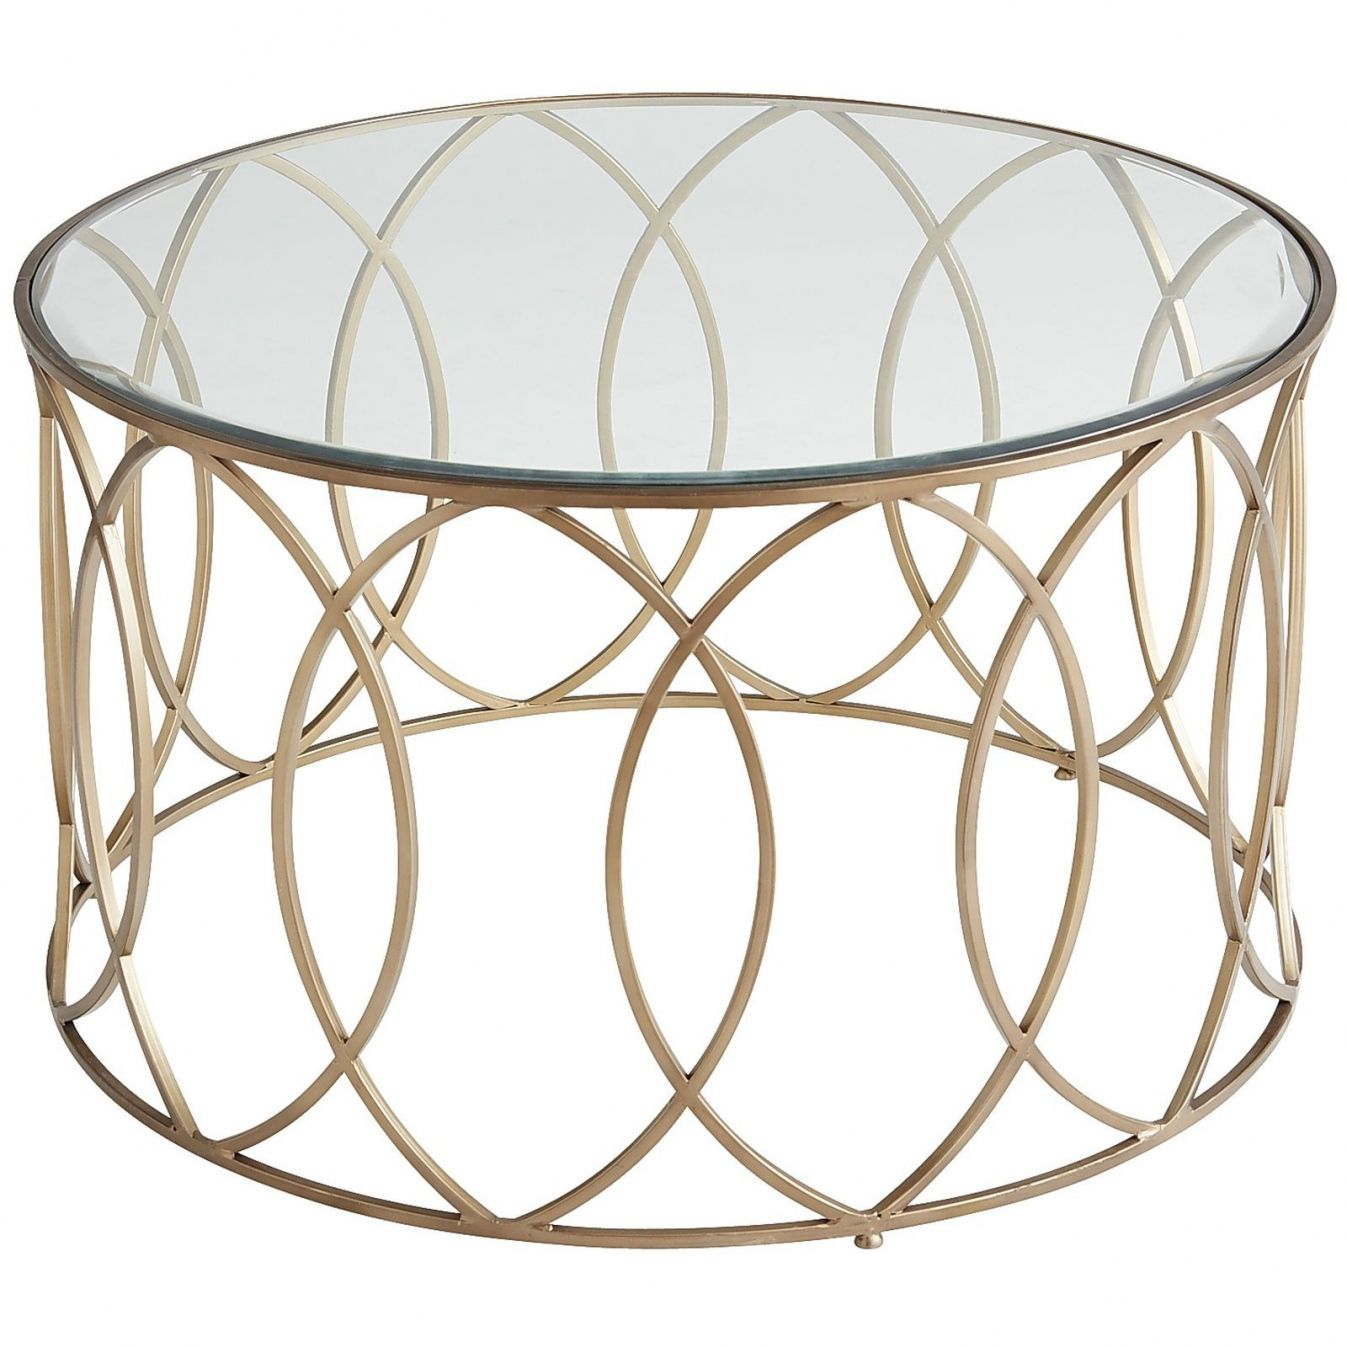 Gentil Pier 1 Glass Coffee Table   Modern Affordable Furniture Check More At  Http://